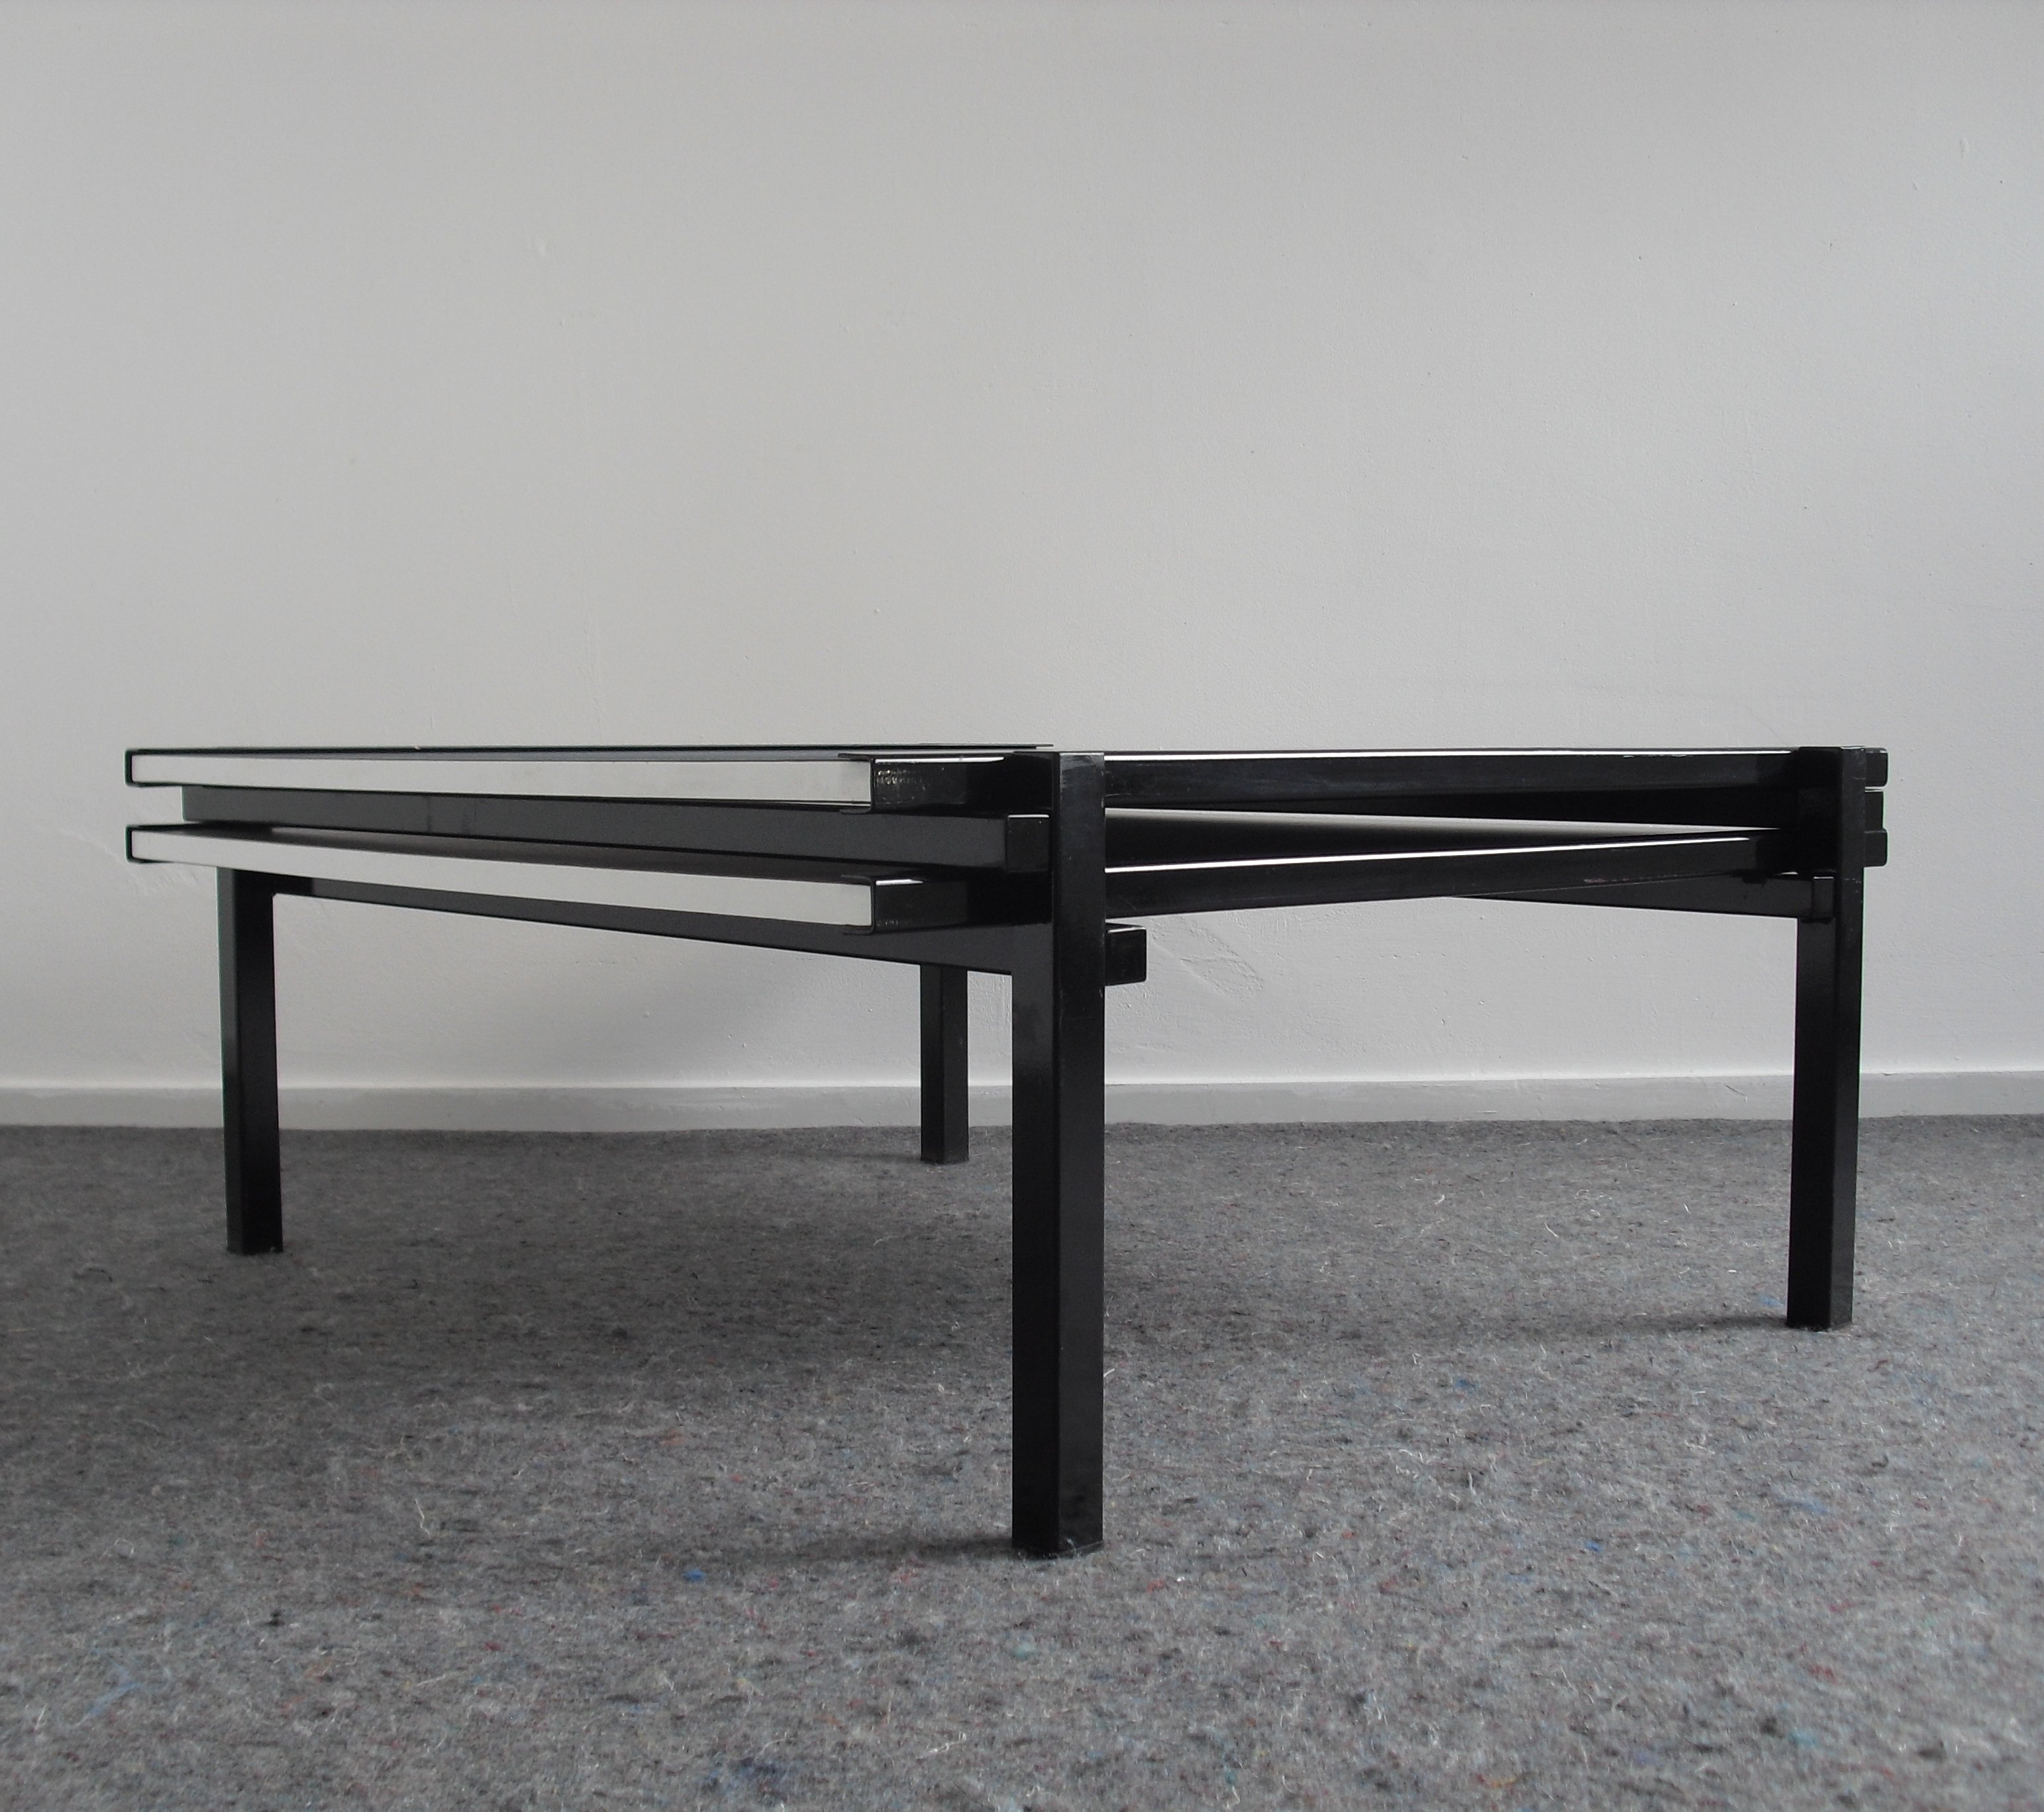 Ringgold Extendable Coffee Table With Storage: Postmodern Cubist Extendable Coffee Table, 1980's